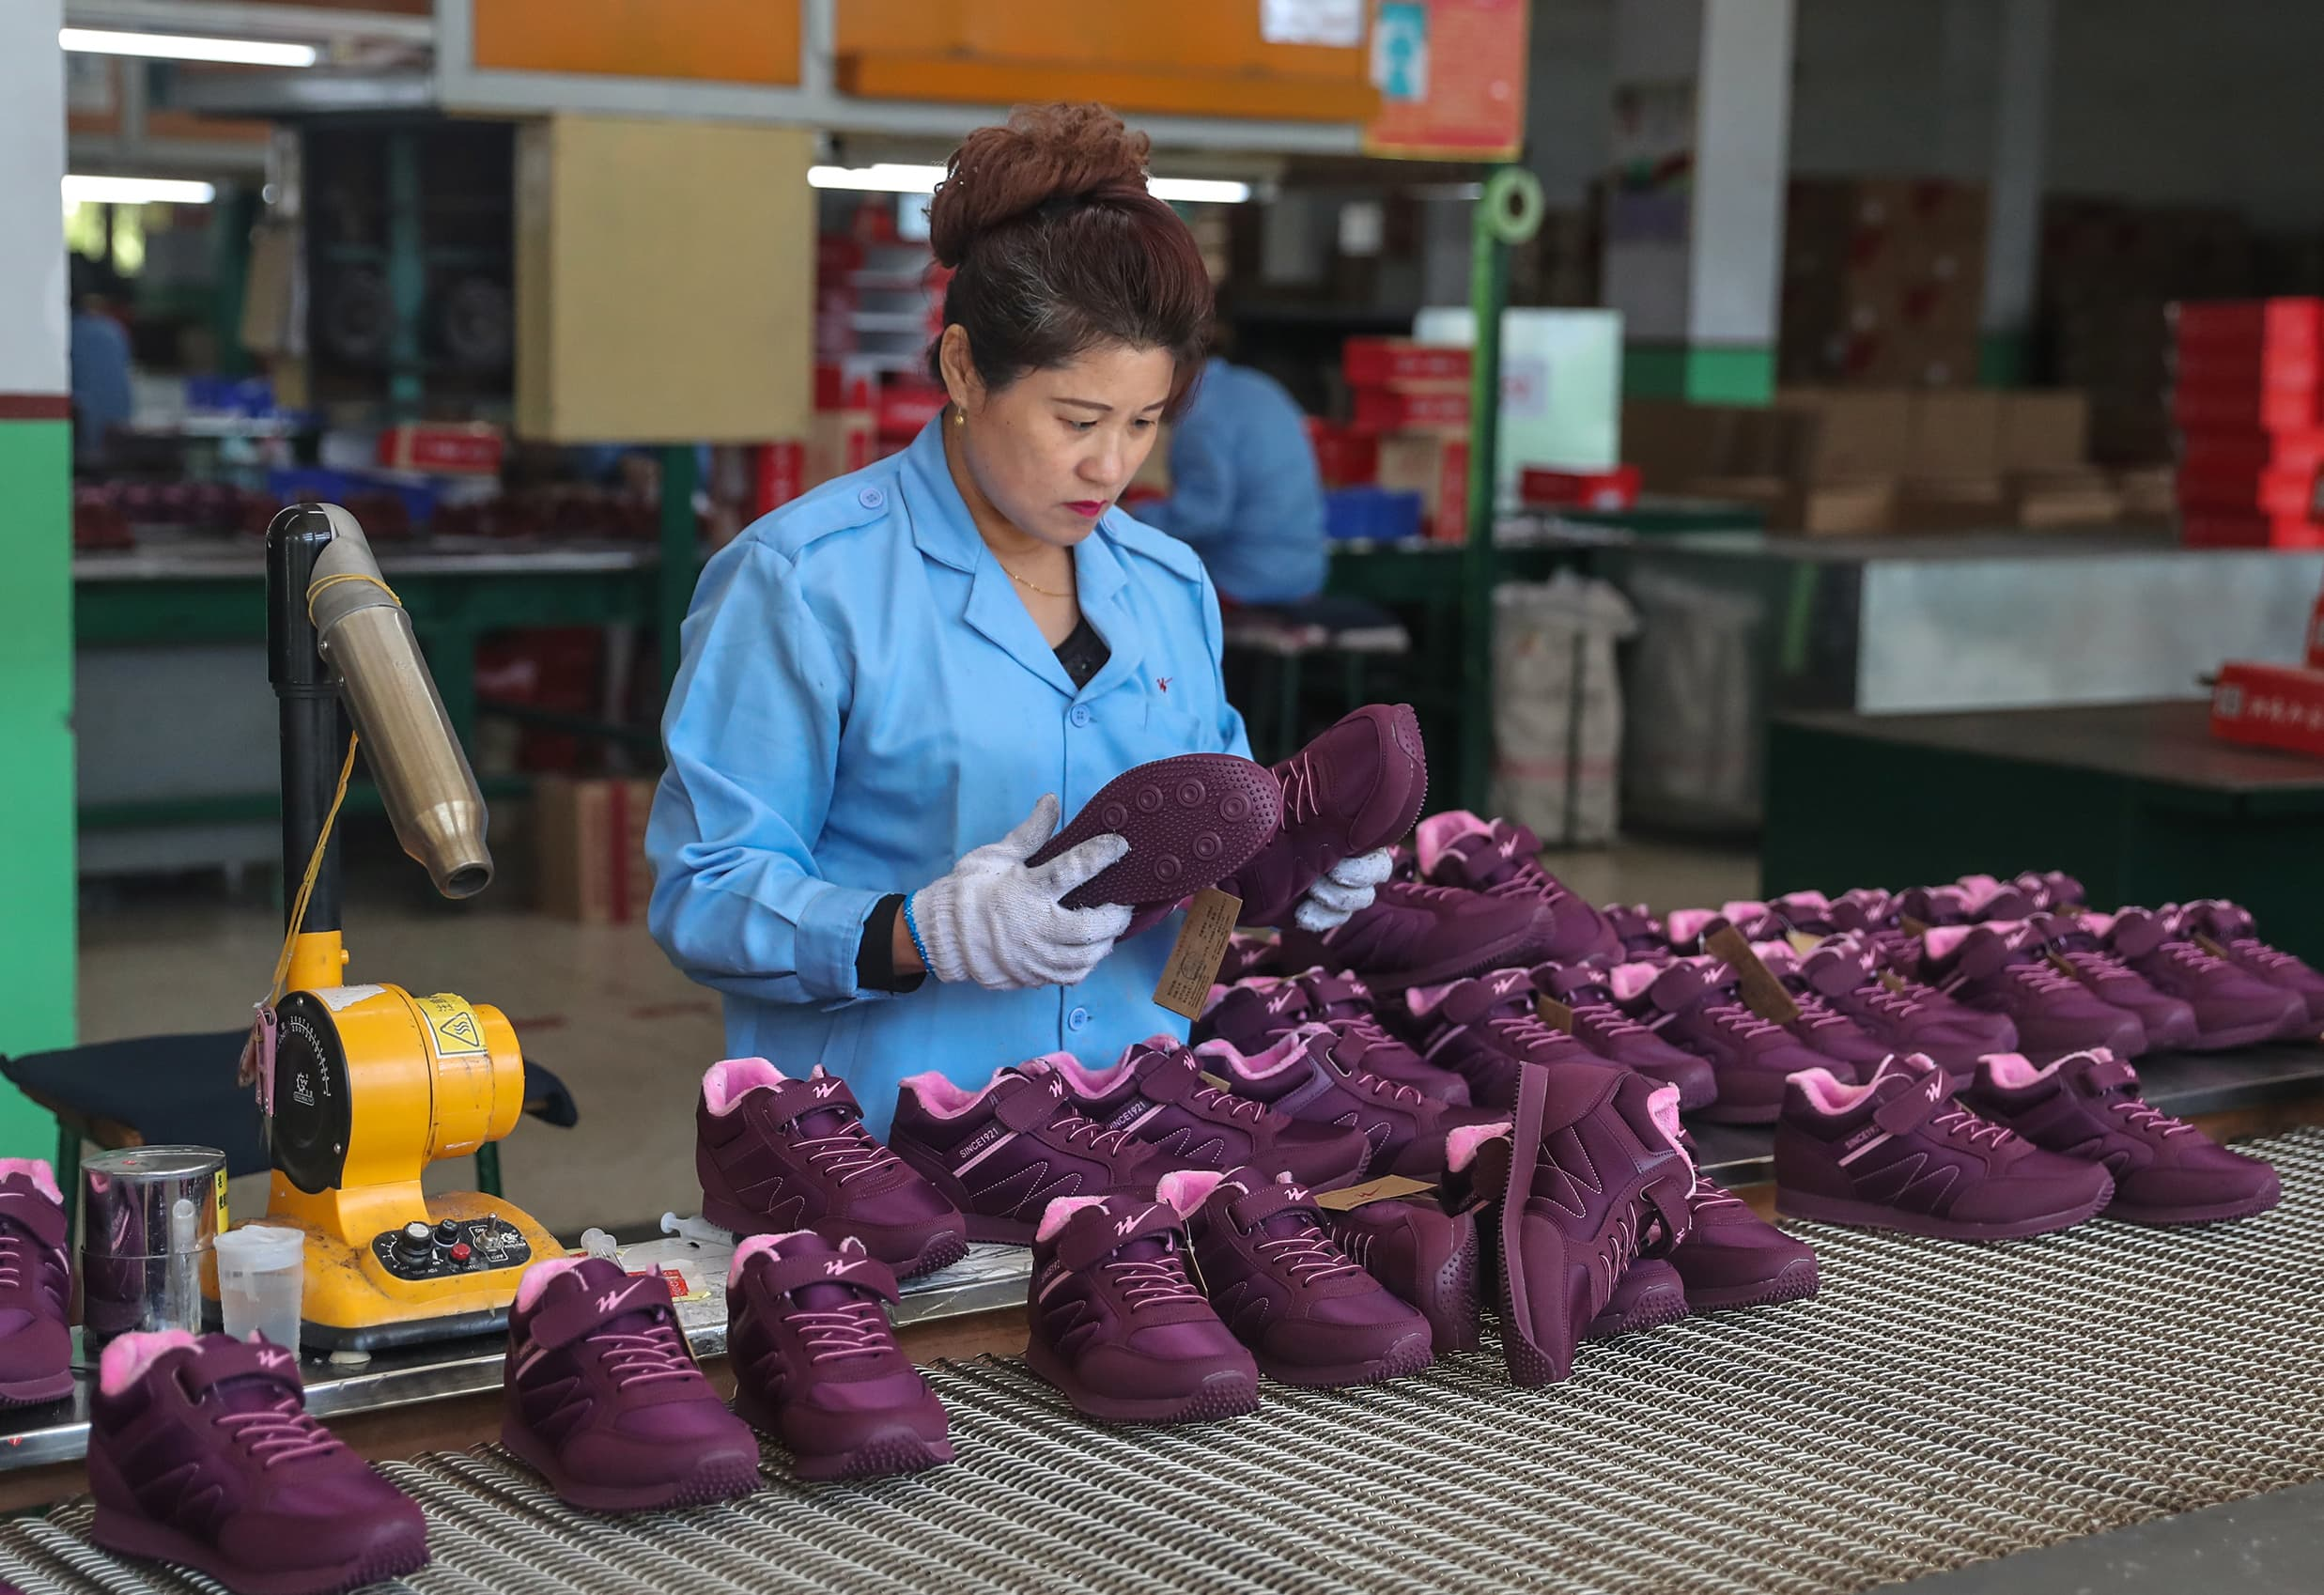 70% of shoes sold in the US comes from China. With new tariffs, the industry braces for a hit.